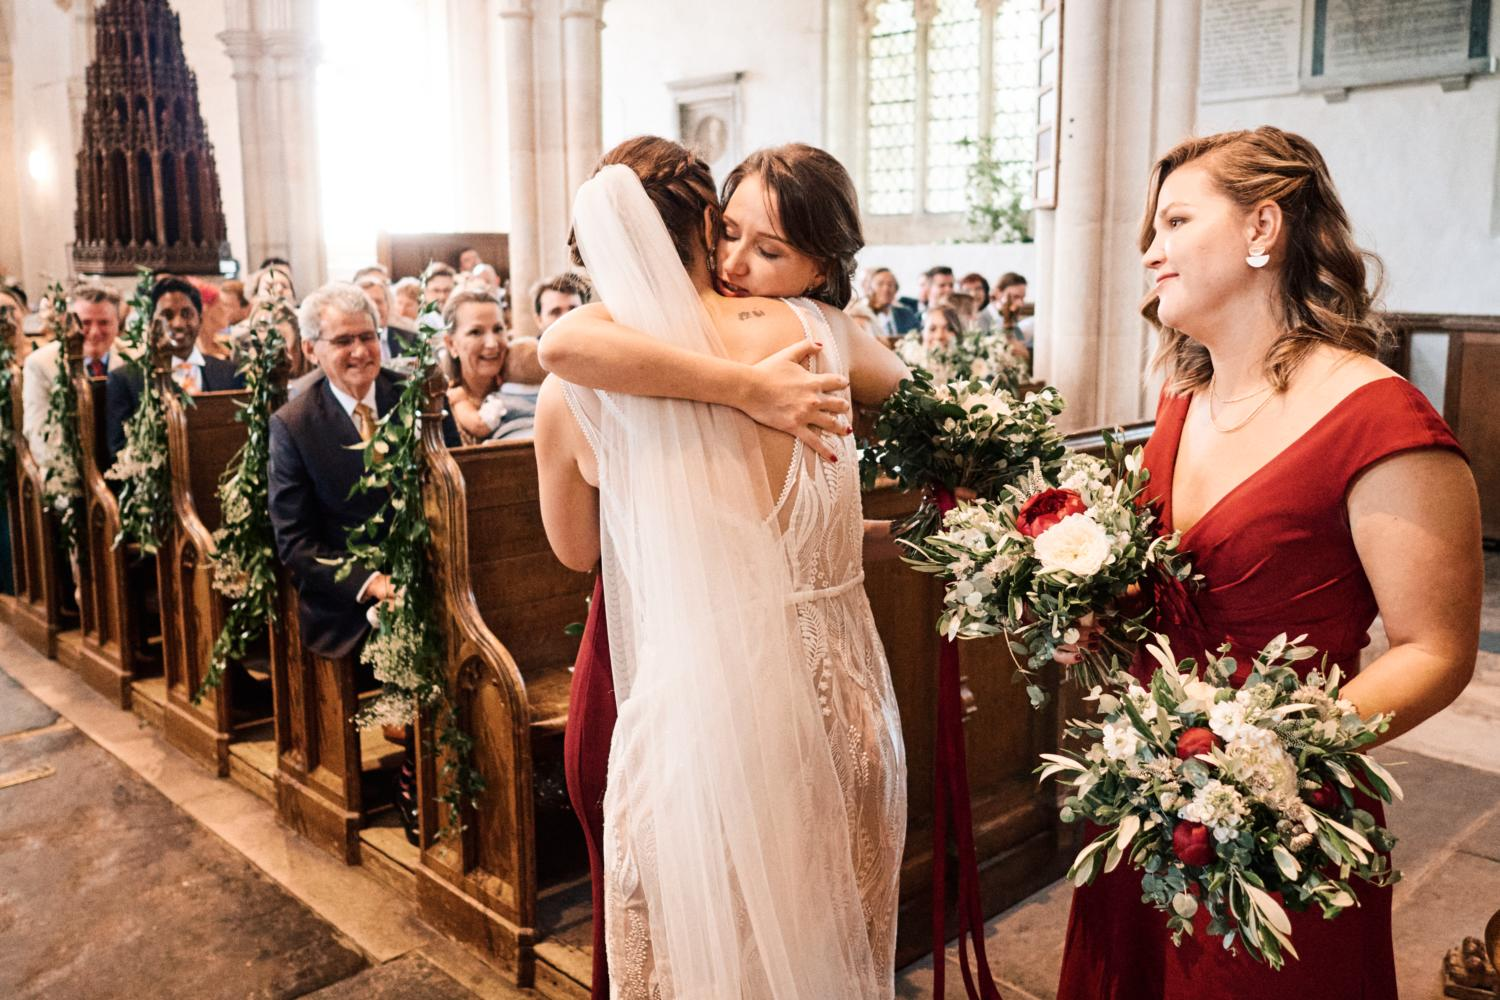 A bride affectionarely hugs her sister during a wedding ceremony in Ewelme, England